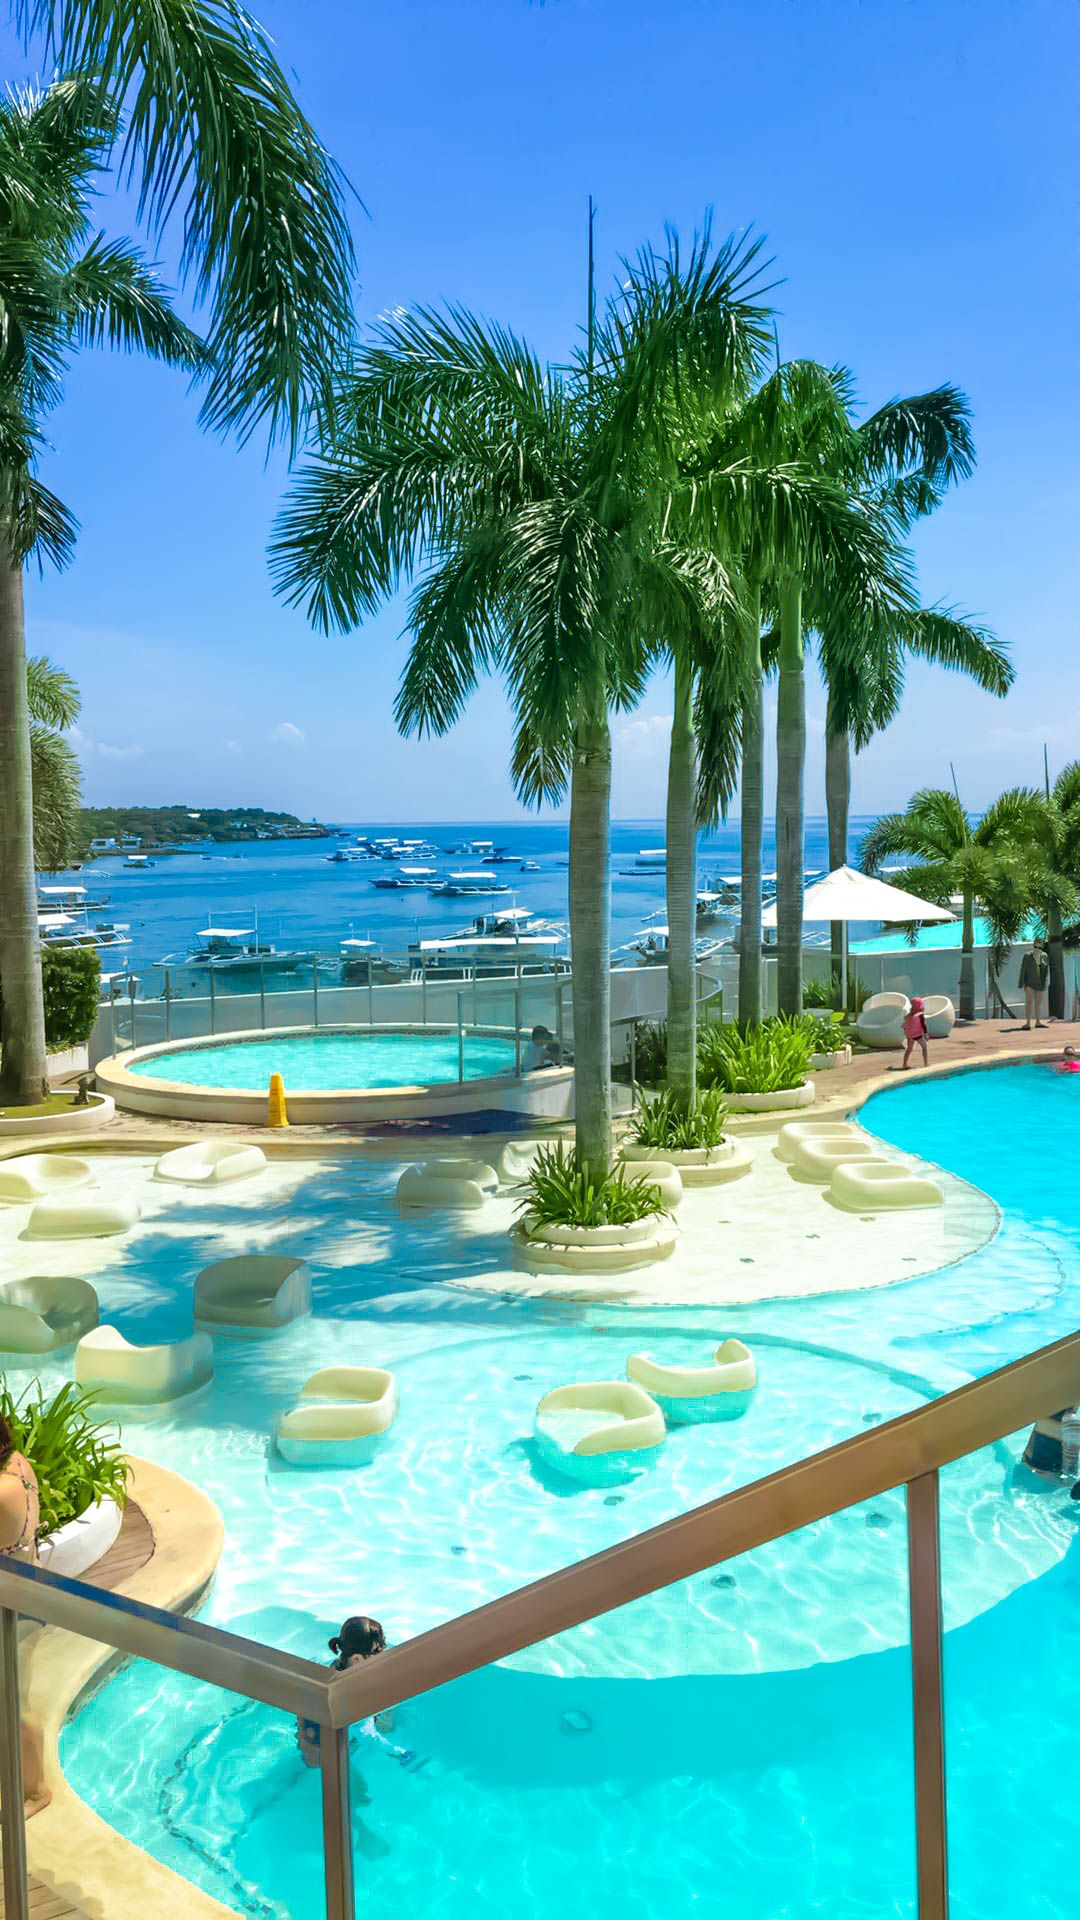 Resort with pools and coconut palms overlooking the sea in Mactan Island, one of the best places to visit in the Philippines